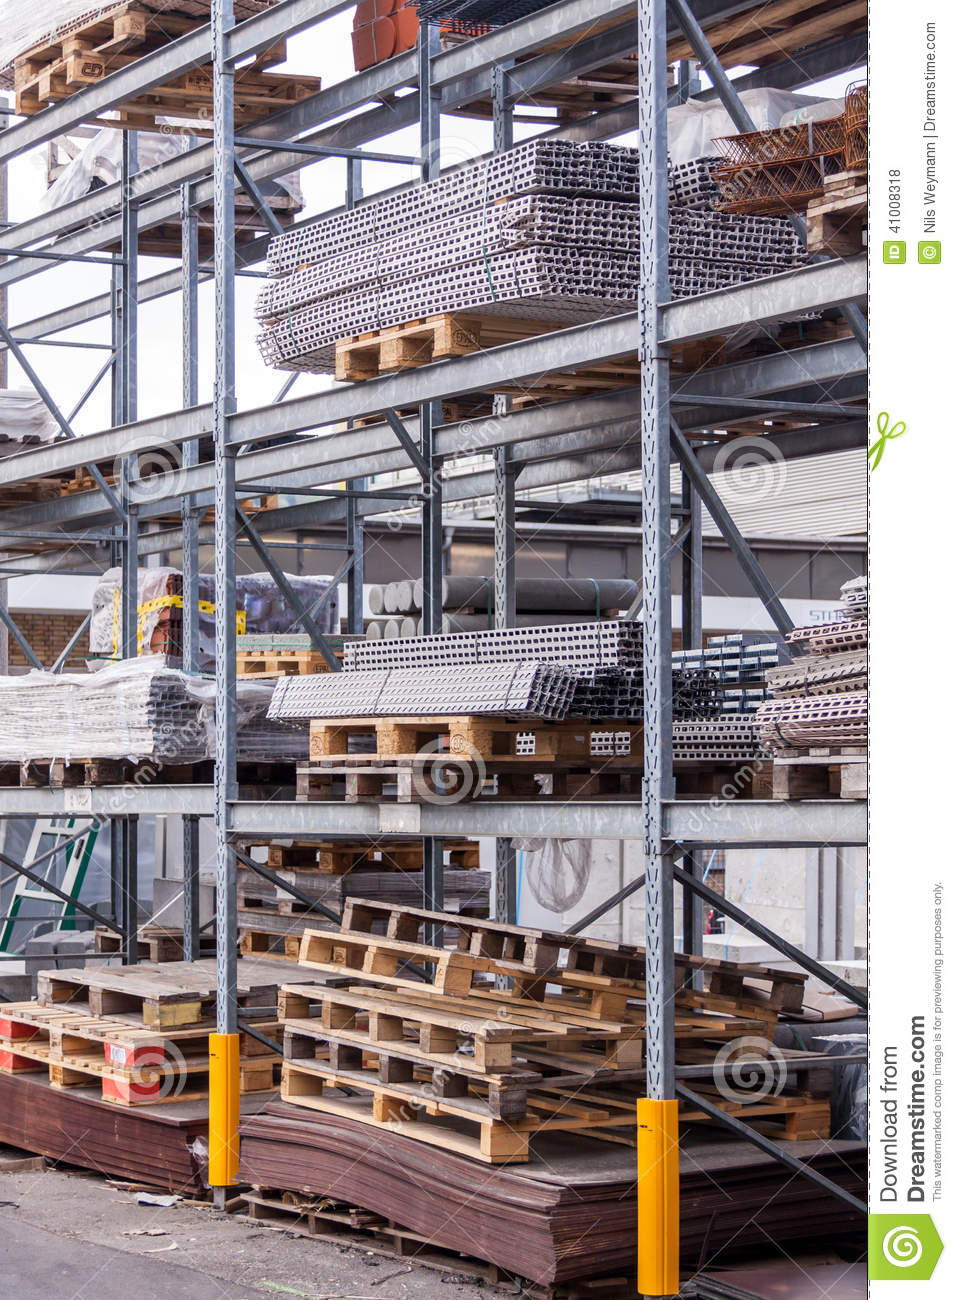 Building And Construction Materials In A Warehouse Stock Photo - Image ...